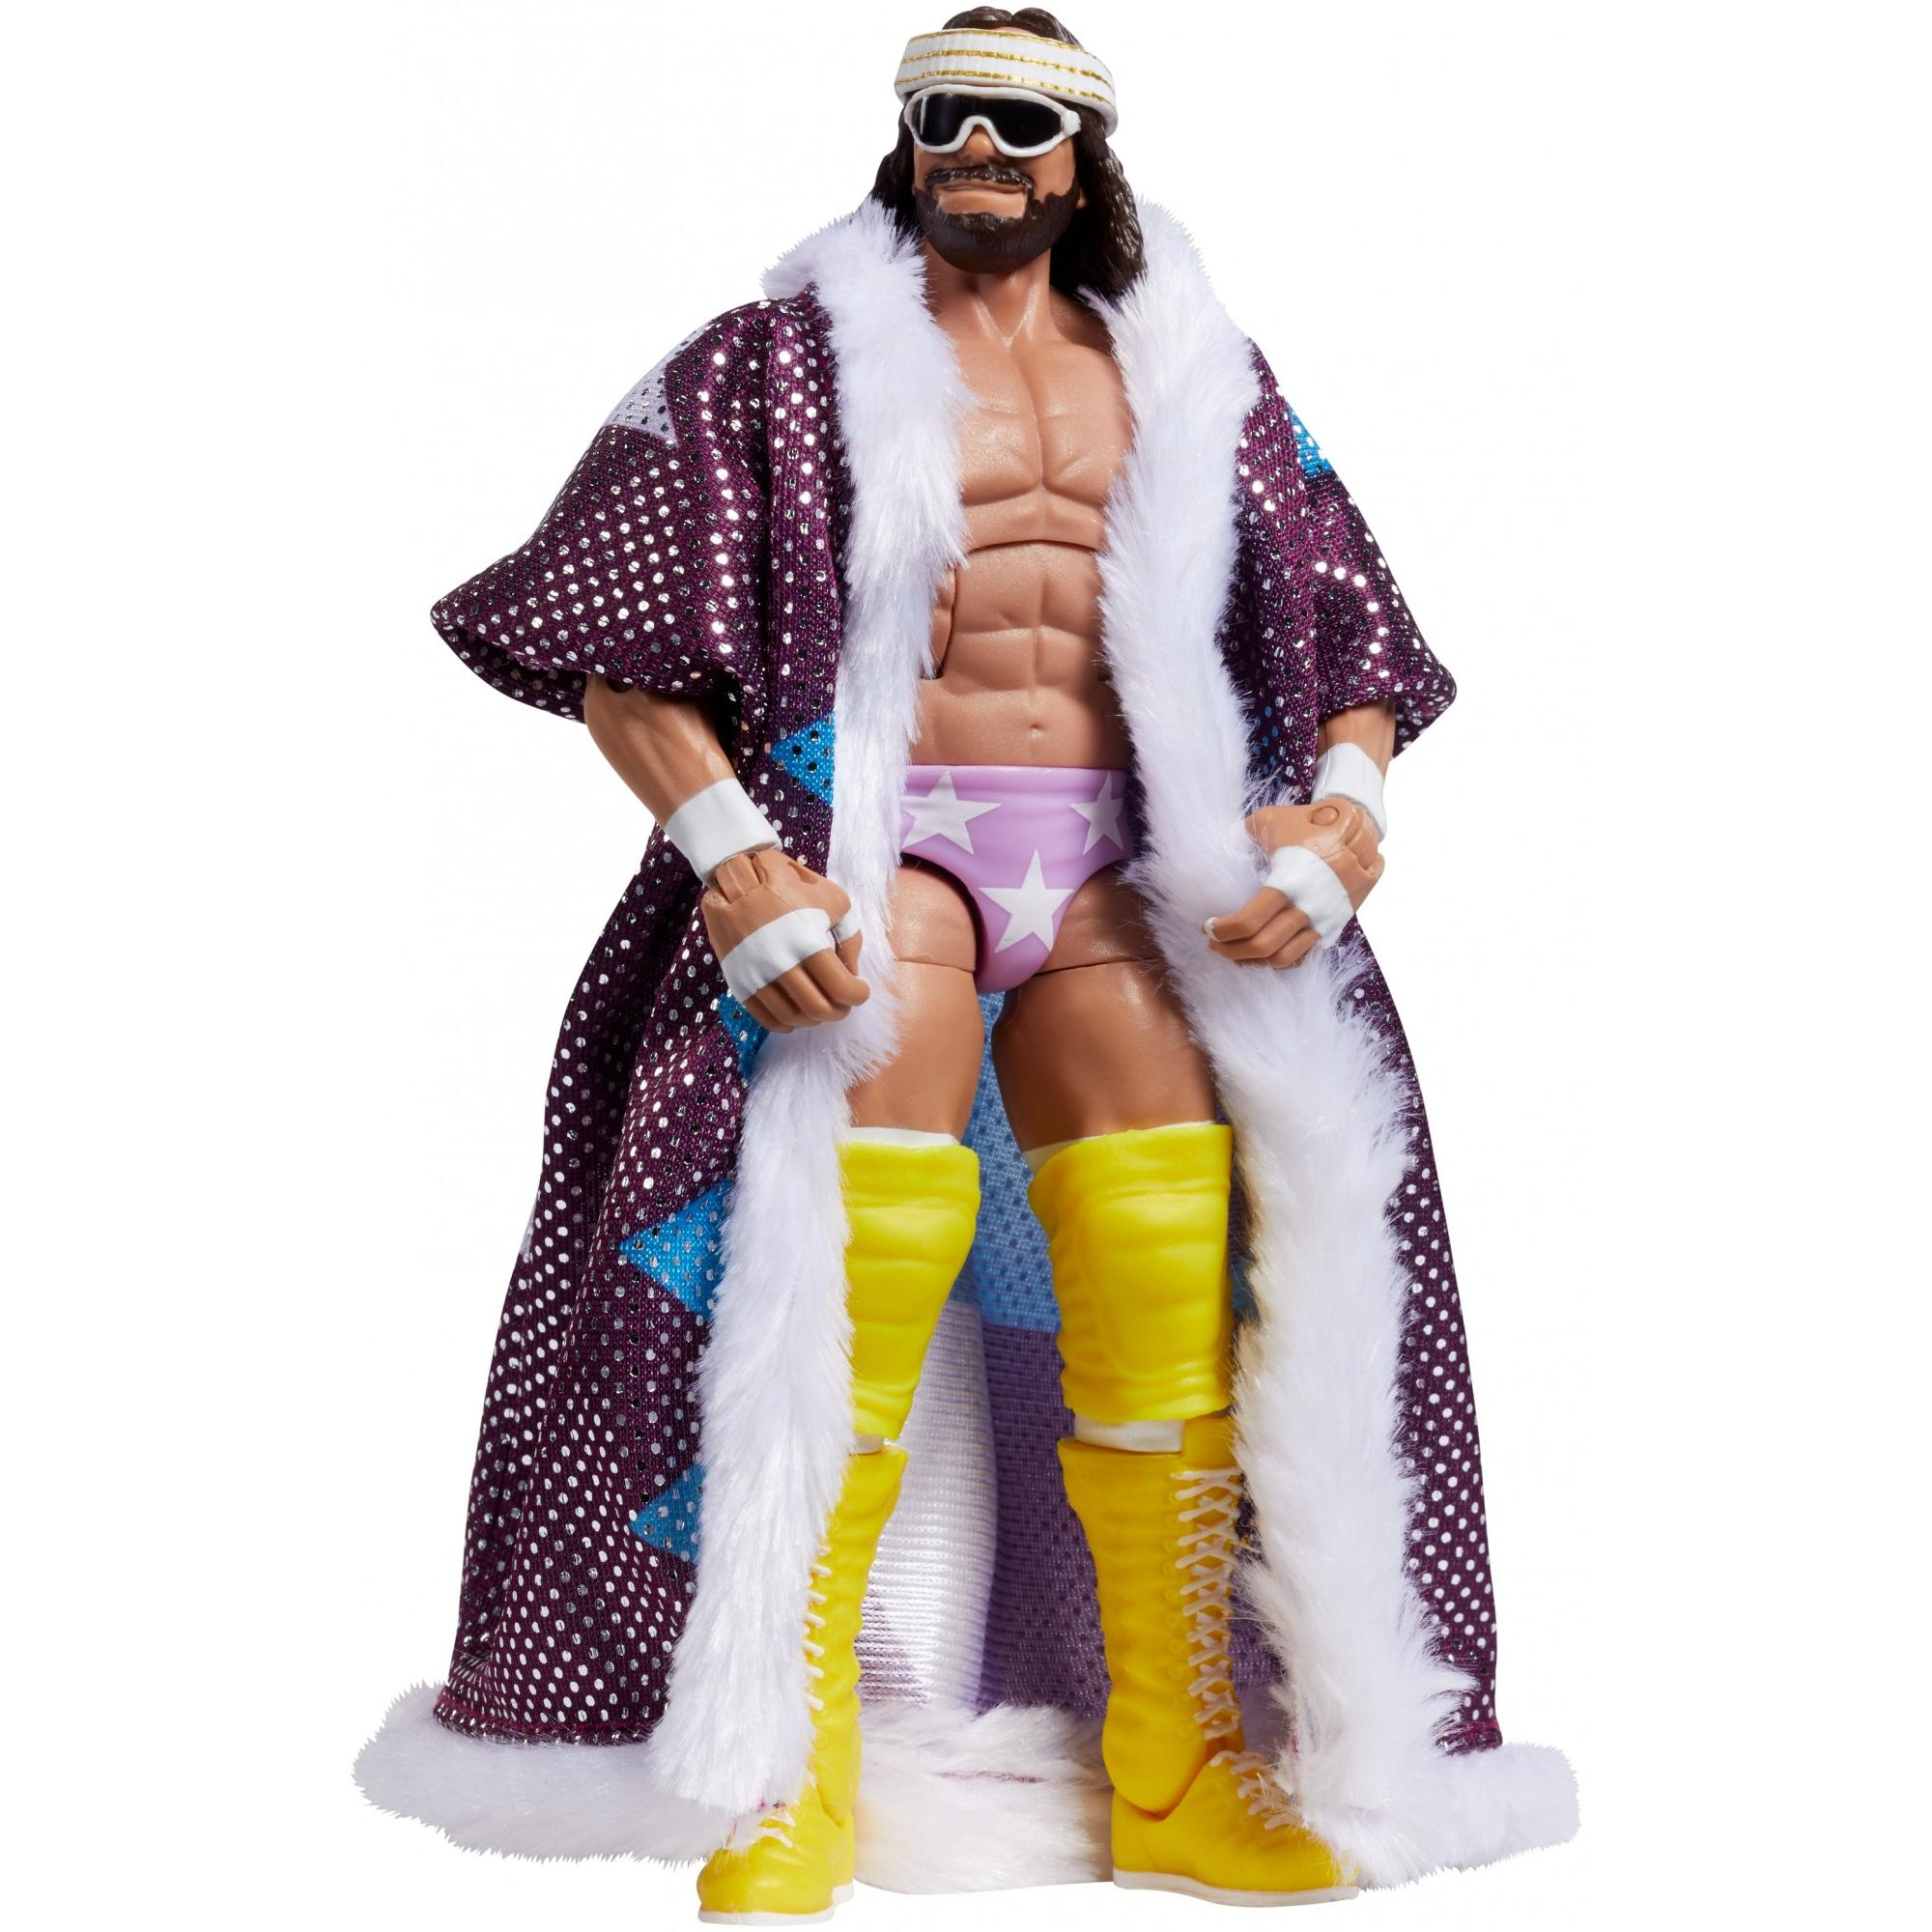 WWE Macho Man Randy Savage defiing moments Elite Série MATTEL WRESTLING FIGURE